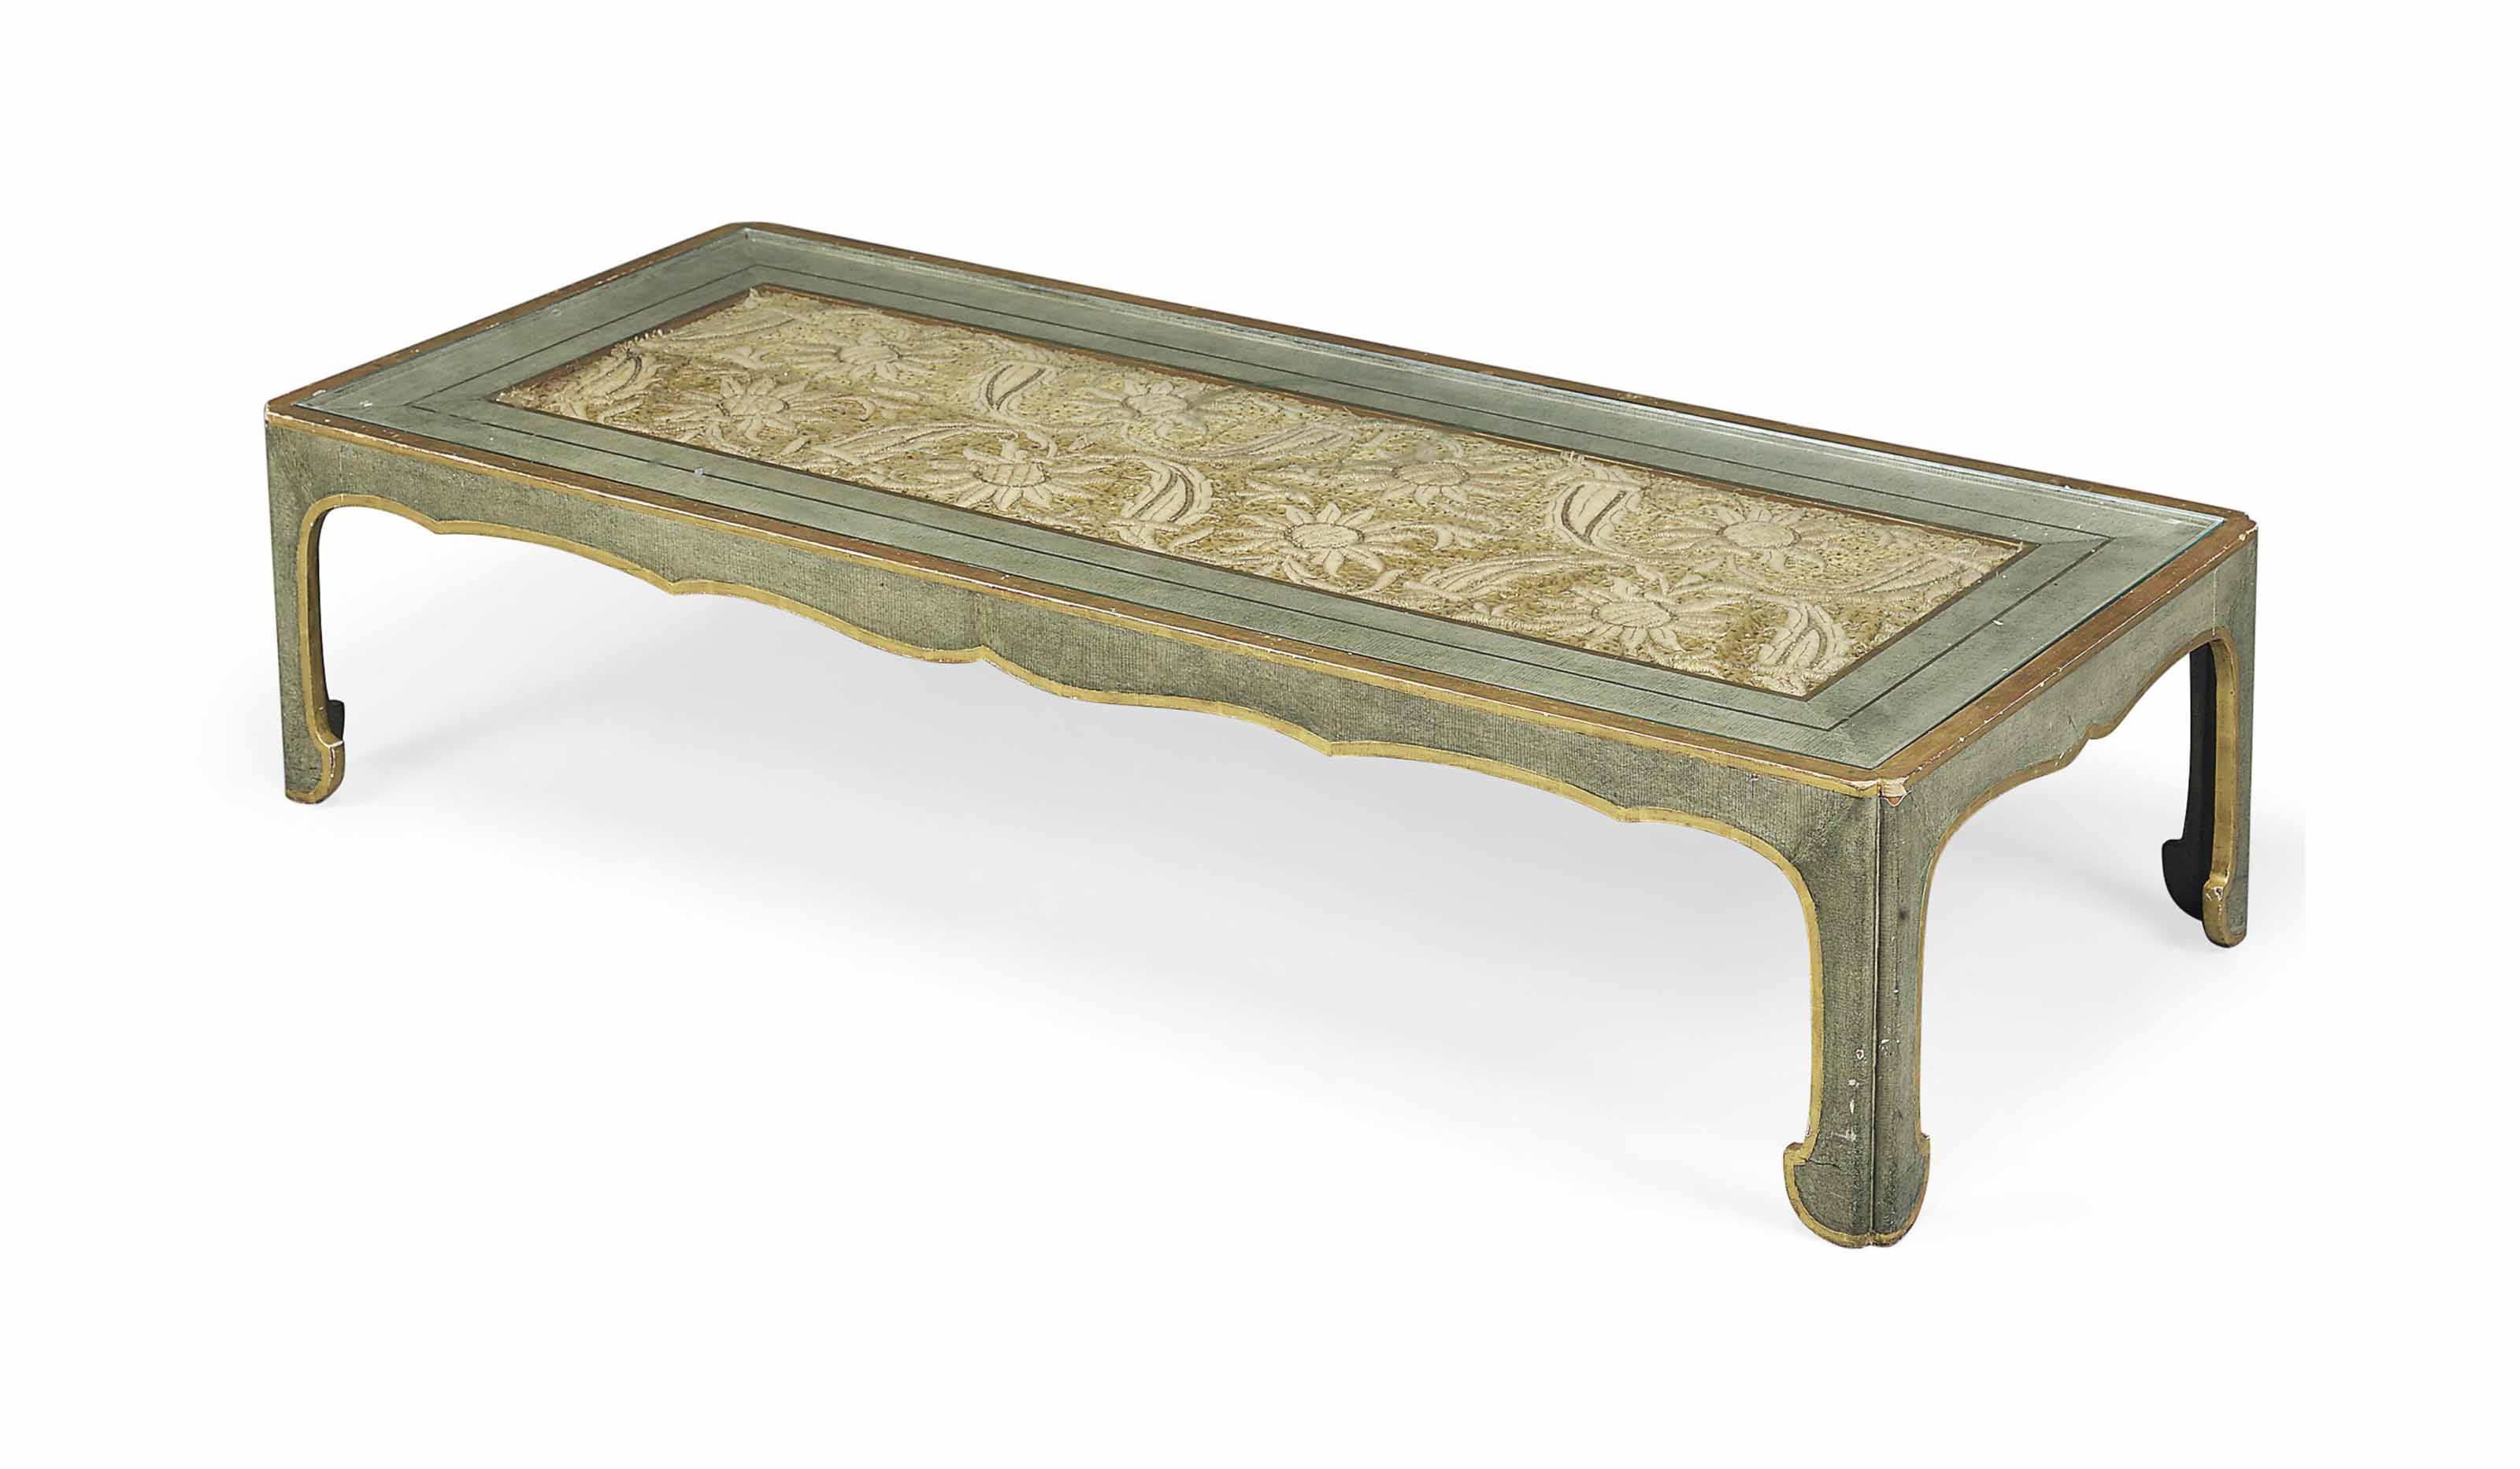 A GREEN-PAINTED AND PARCEL-GILT LOW TABLE